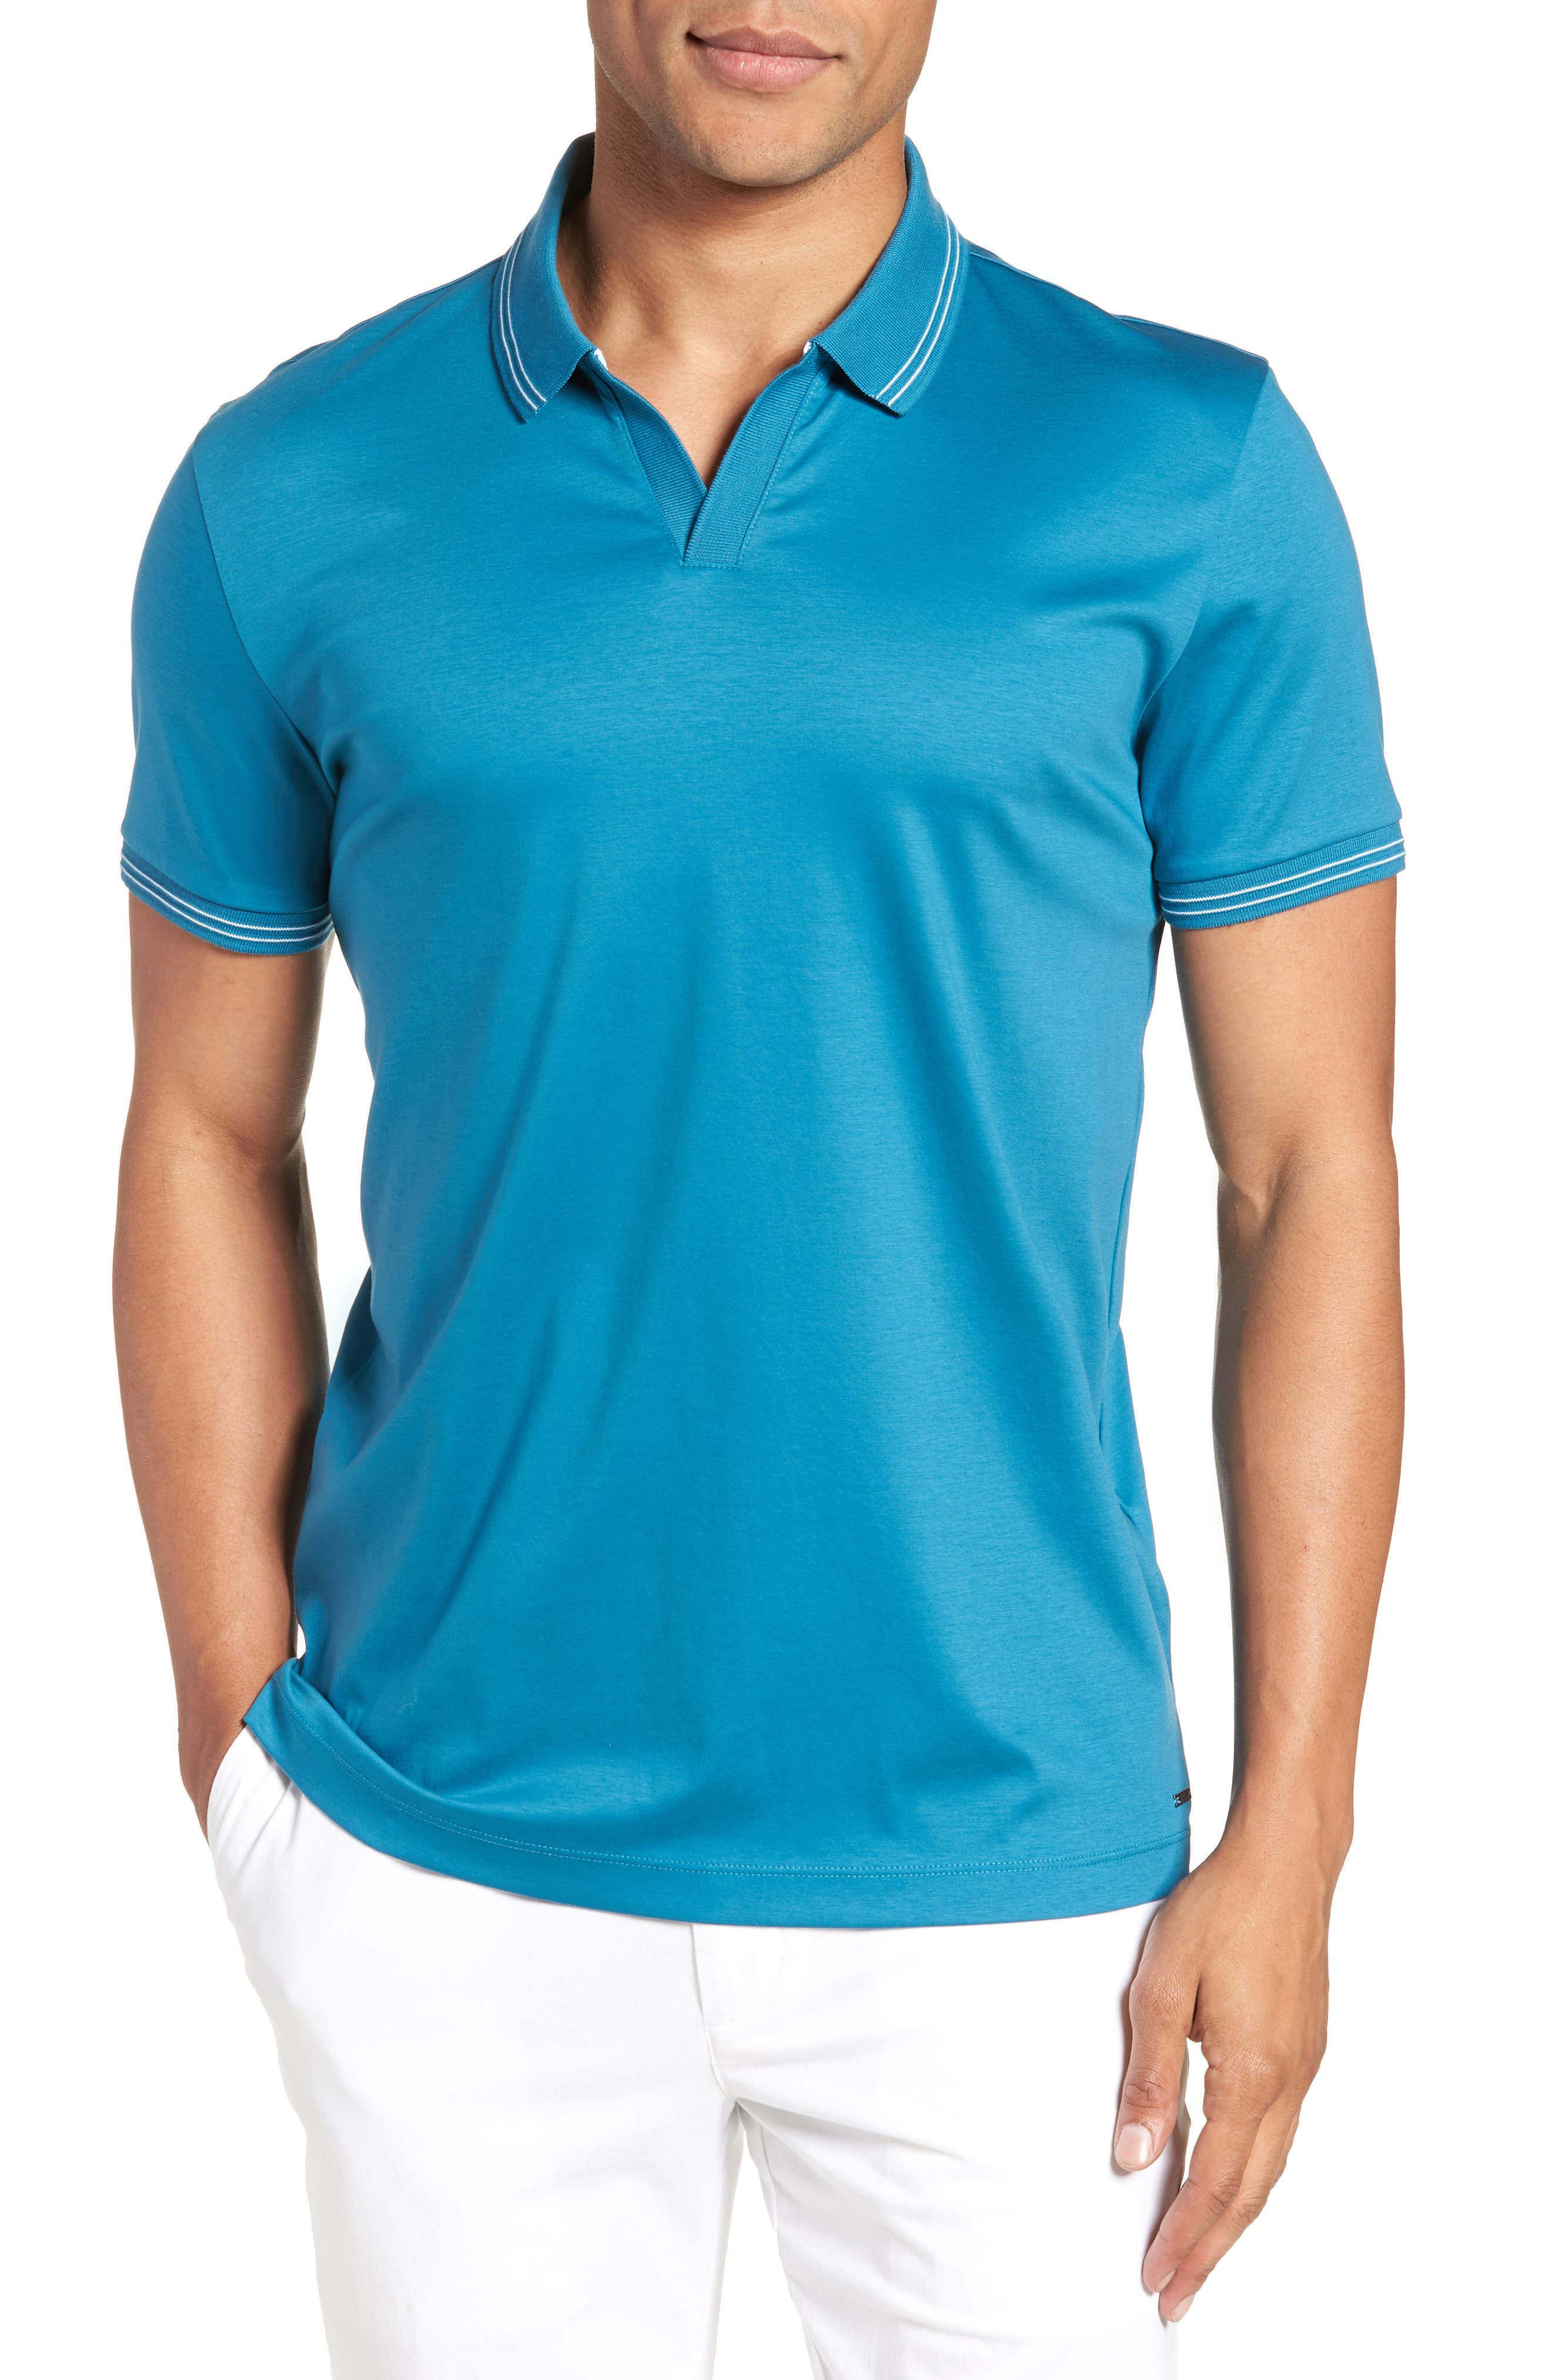 Sale Ebay Sneakernews Cheap Price BOSS Parlay Johnny Polo Shirt Reliable Sale Online 7FfuS6YW4A